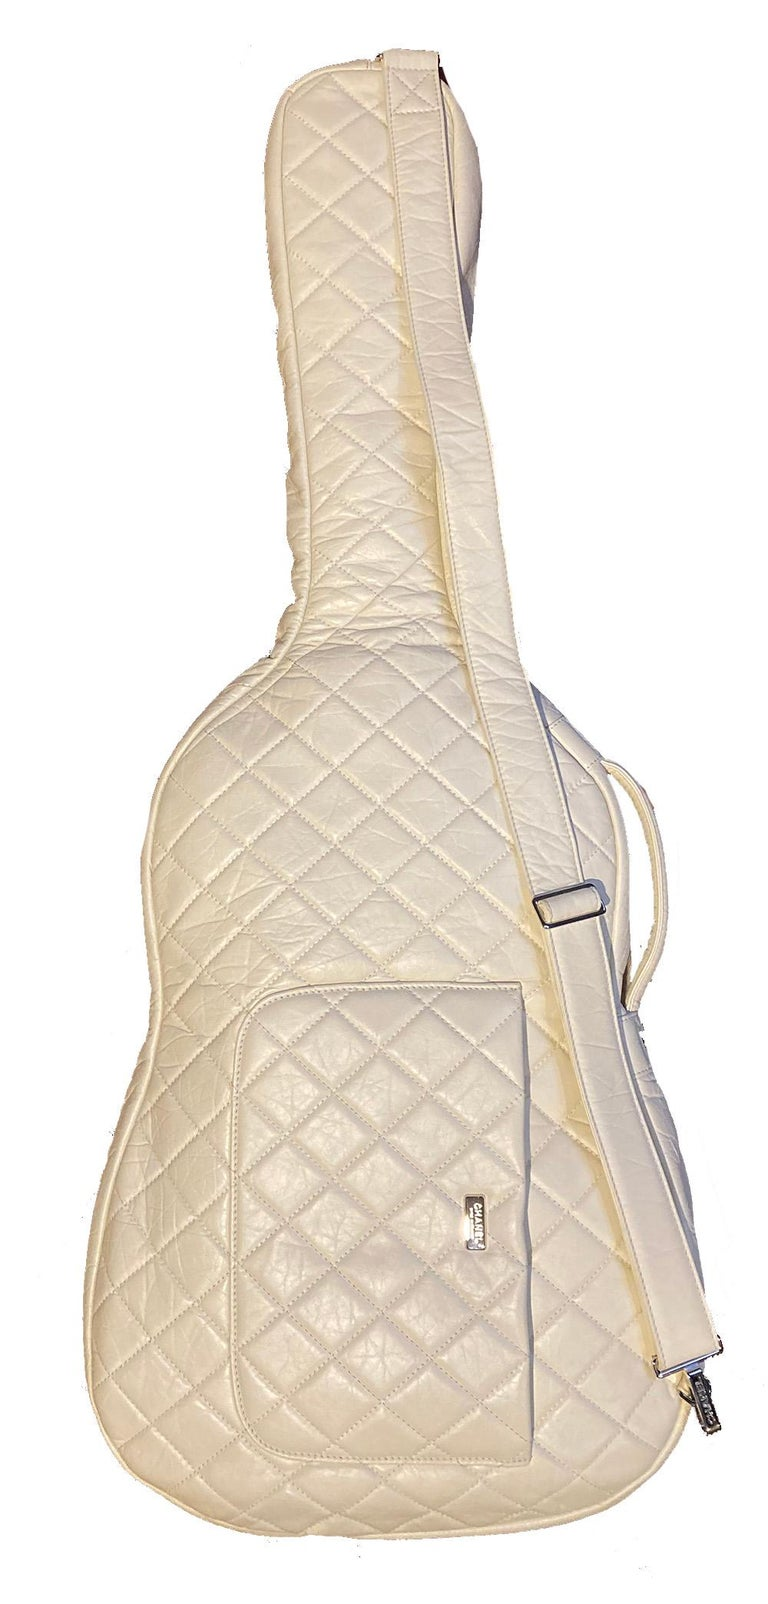 Rare Chanel white leather guitar case. excellent condition from spring 2009 runway show. cream quilted leather exterior with silver hardware and matching adjustable shoulder strap. front zip pouch pocket. Double zip closure opens to cream soft